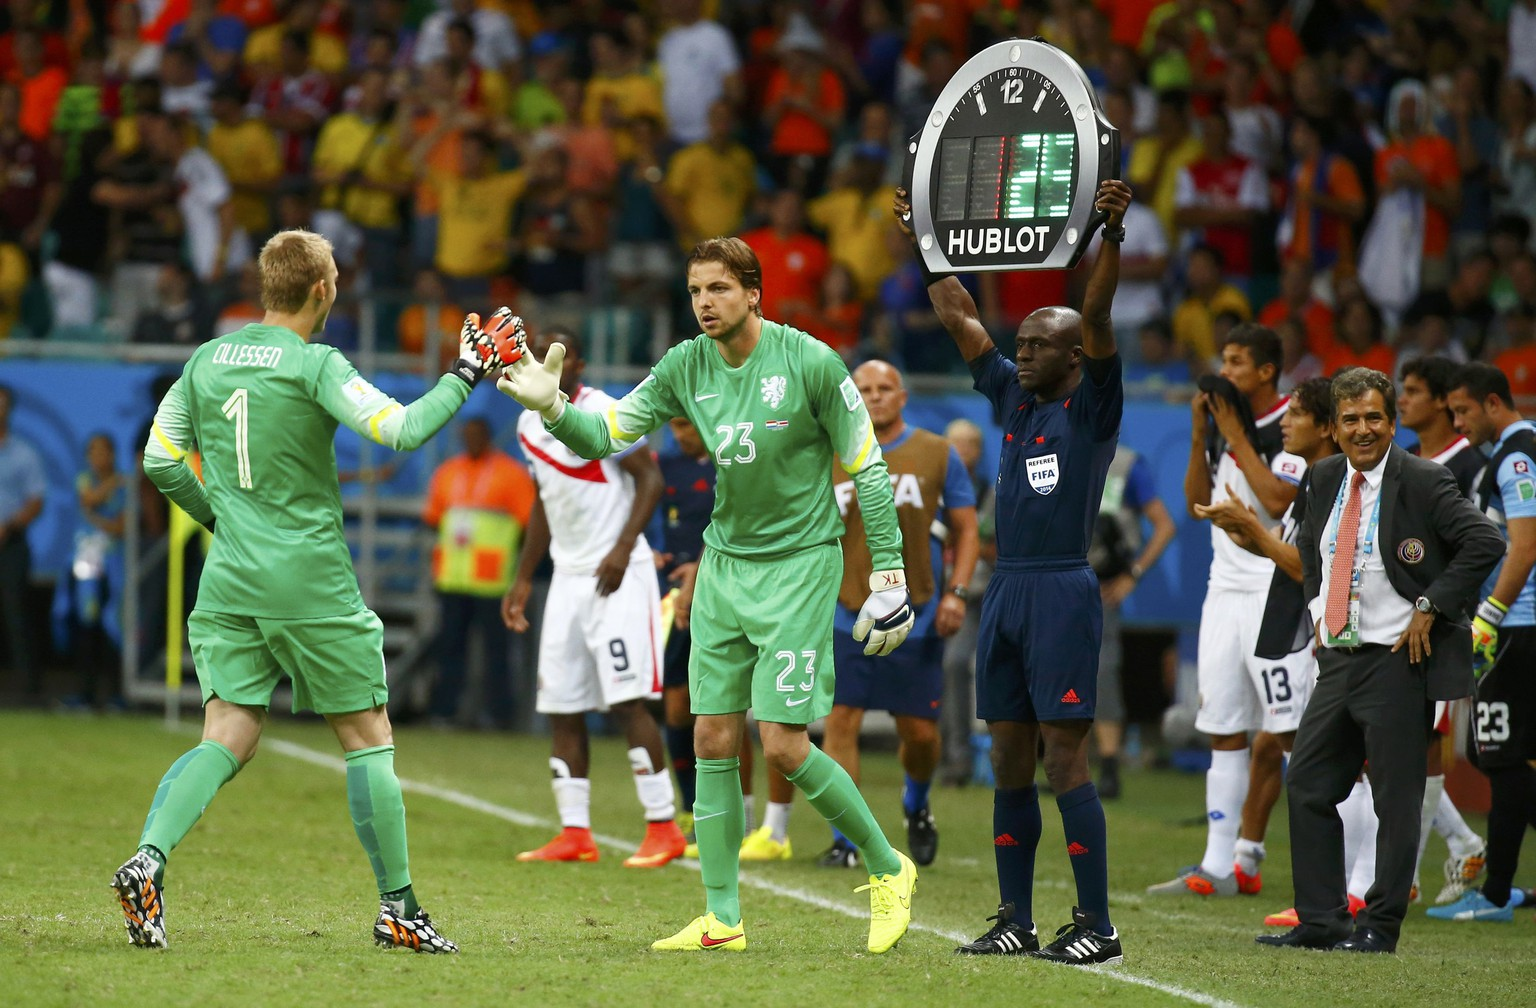 Goalkeeper Tim Krul of the Netherlands substitutes goalkeeper Jasper Cillessen (1) during extra time in the 2014 World Cup quarter-finals between Costa Rica and the Netherlands at the Fonte Nova arena in Salvador July 5, 2014. REUTERS/Paul Hanna (BRAZIL  - Tags: SOCCER SPORT WORLD CUP)        TOPCUP